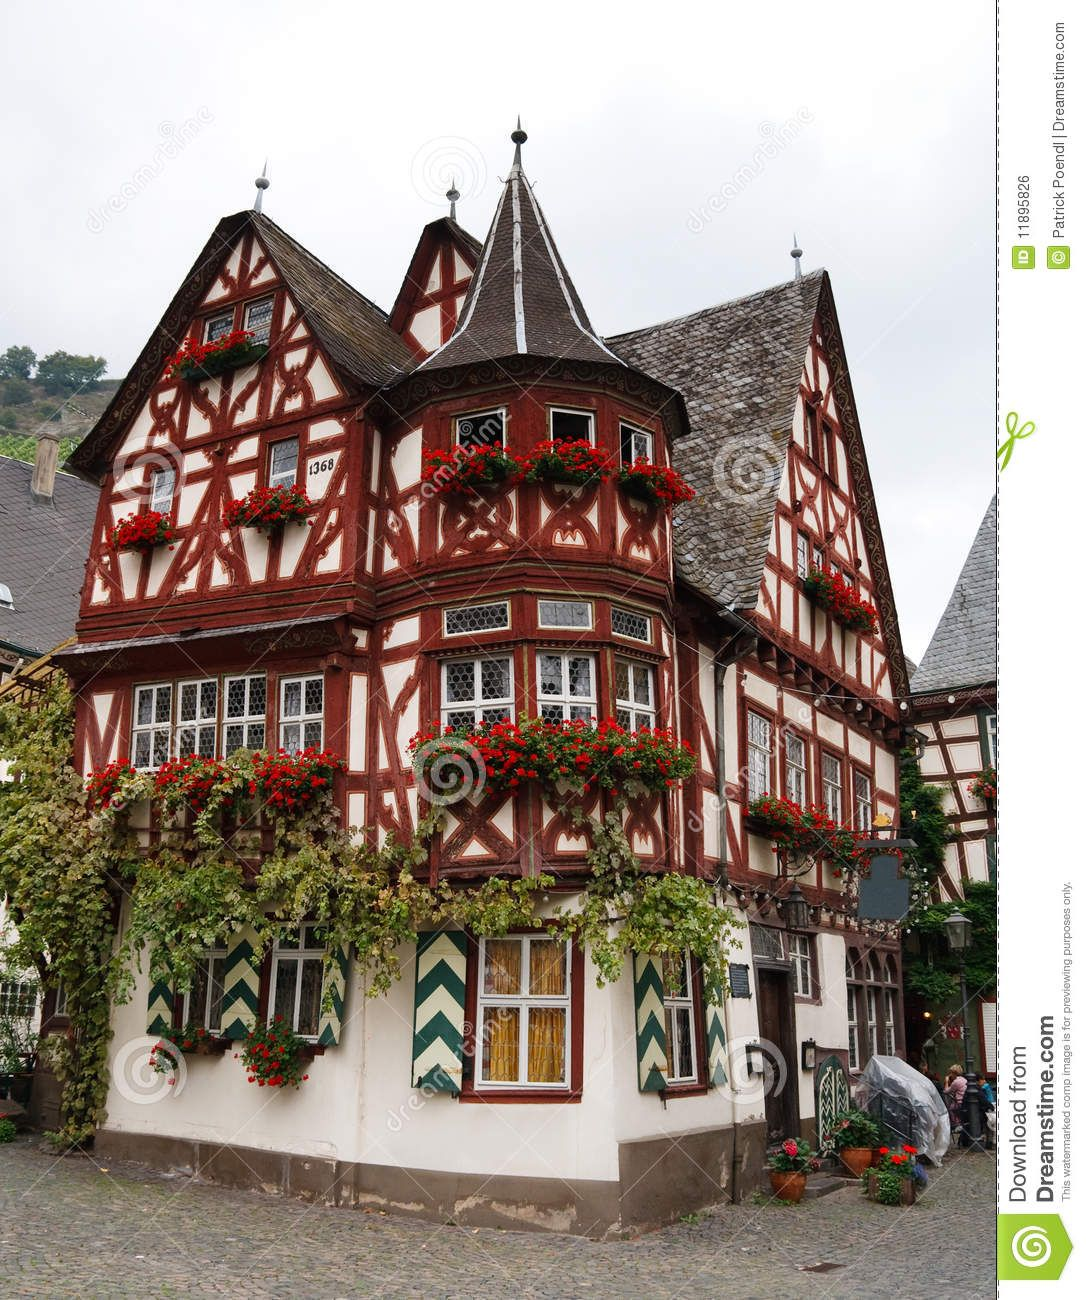 Altes Haus Old House In Bacharach Germany Old House Haus House